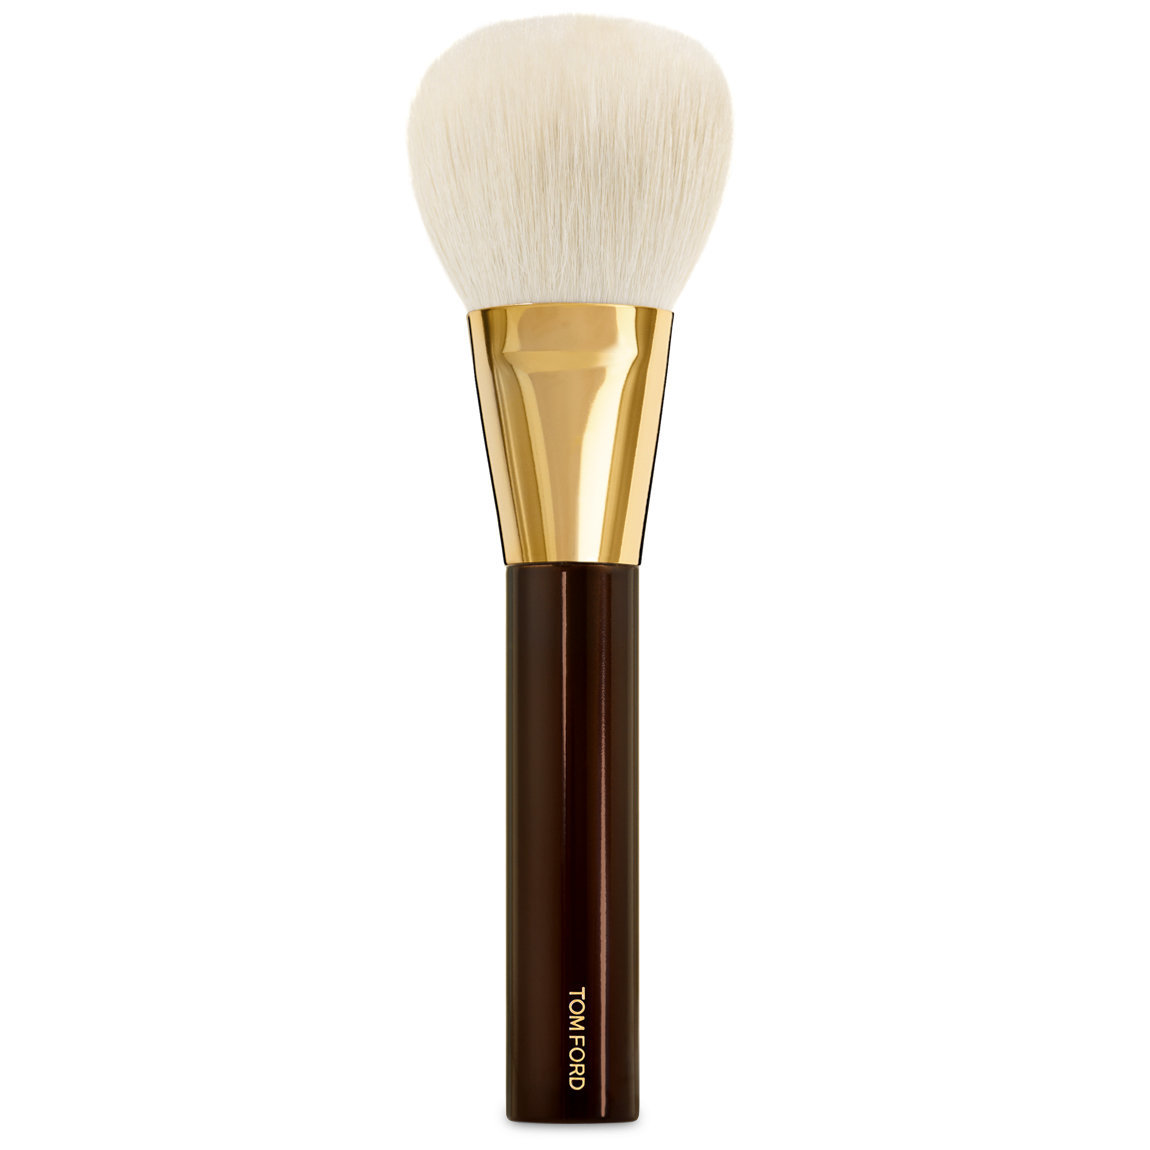 TOM FORD Bronzer Brush 05 alternative view 1 - product swatch.